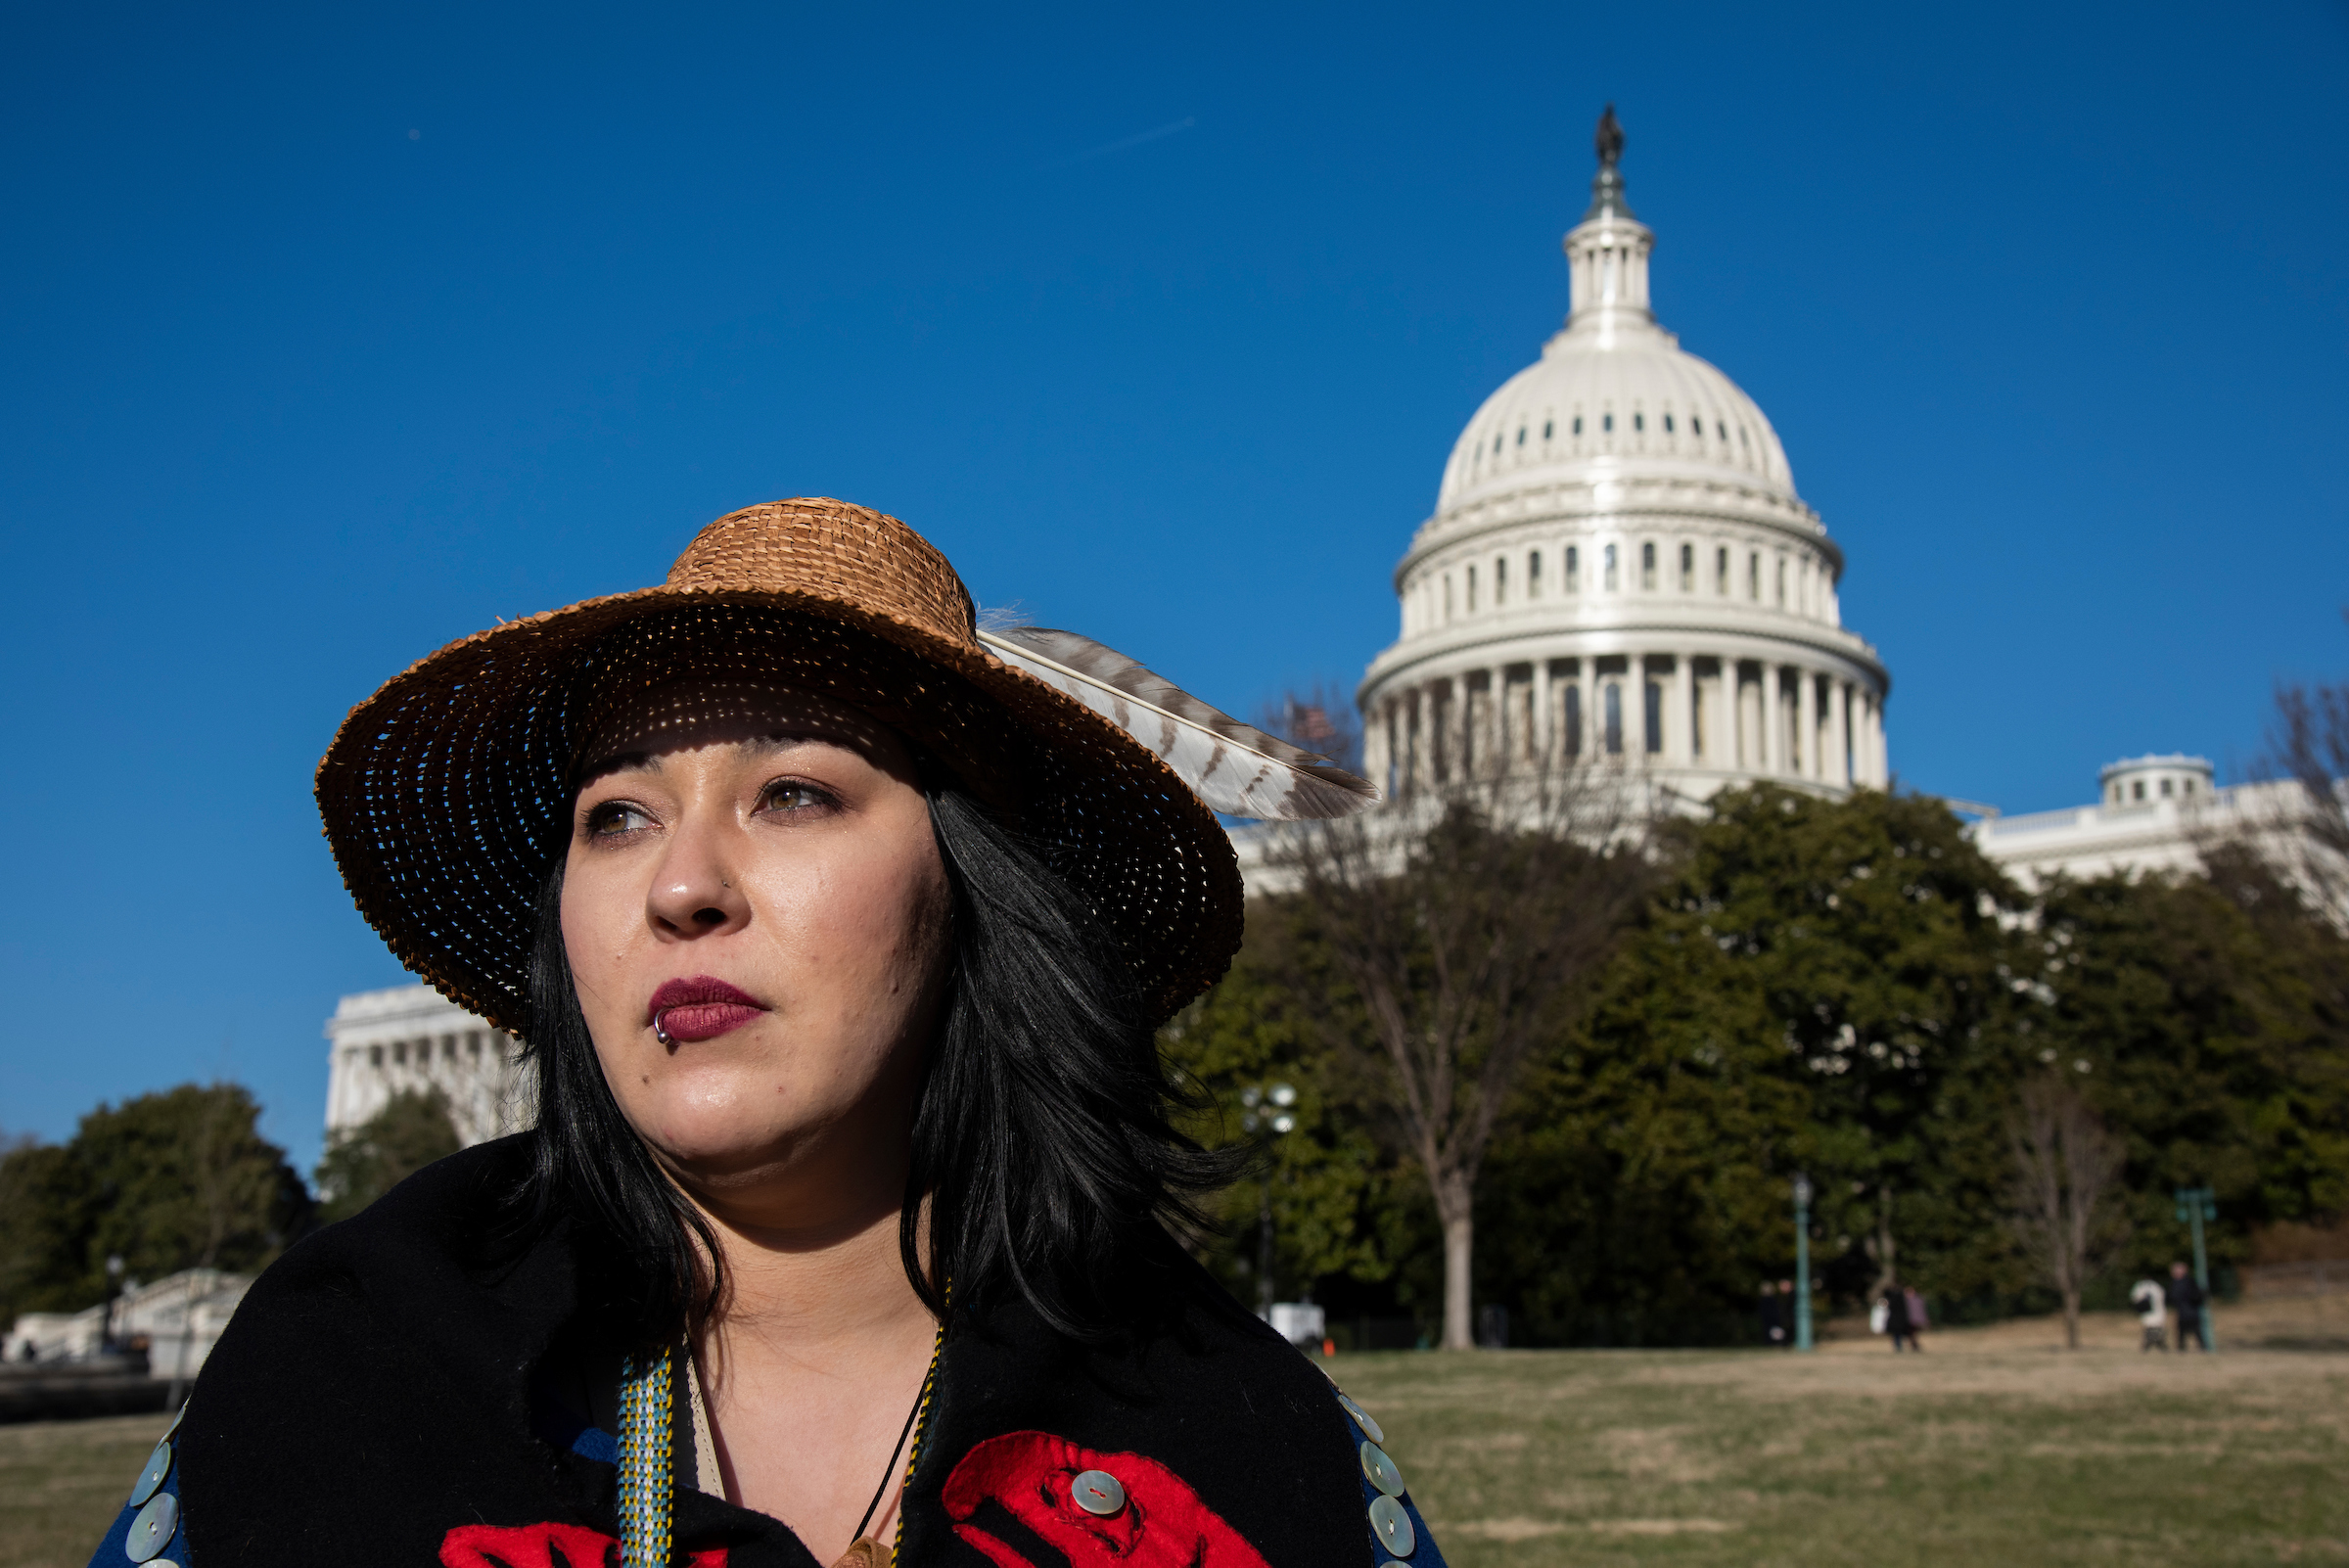 Kari Ames stands in front of the U.S. Capitol.